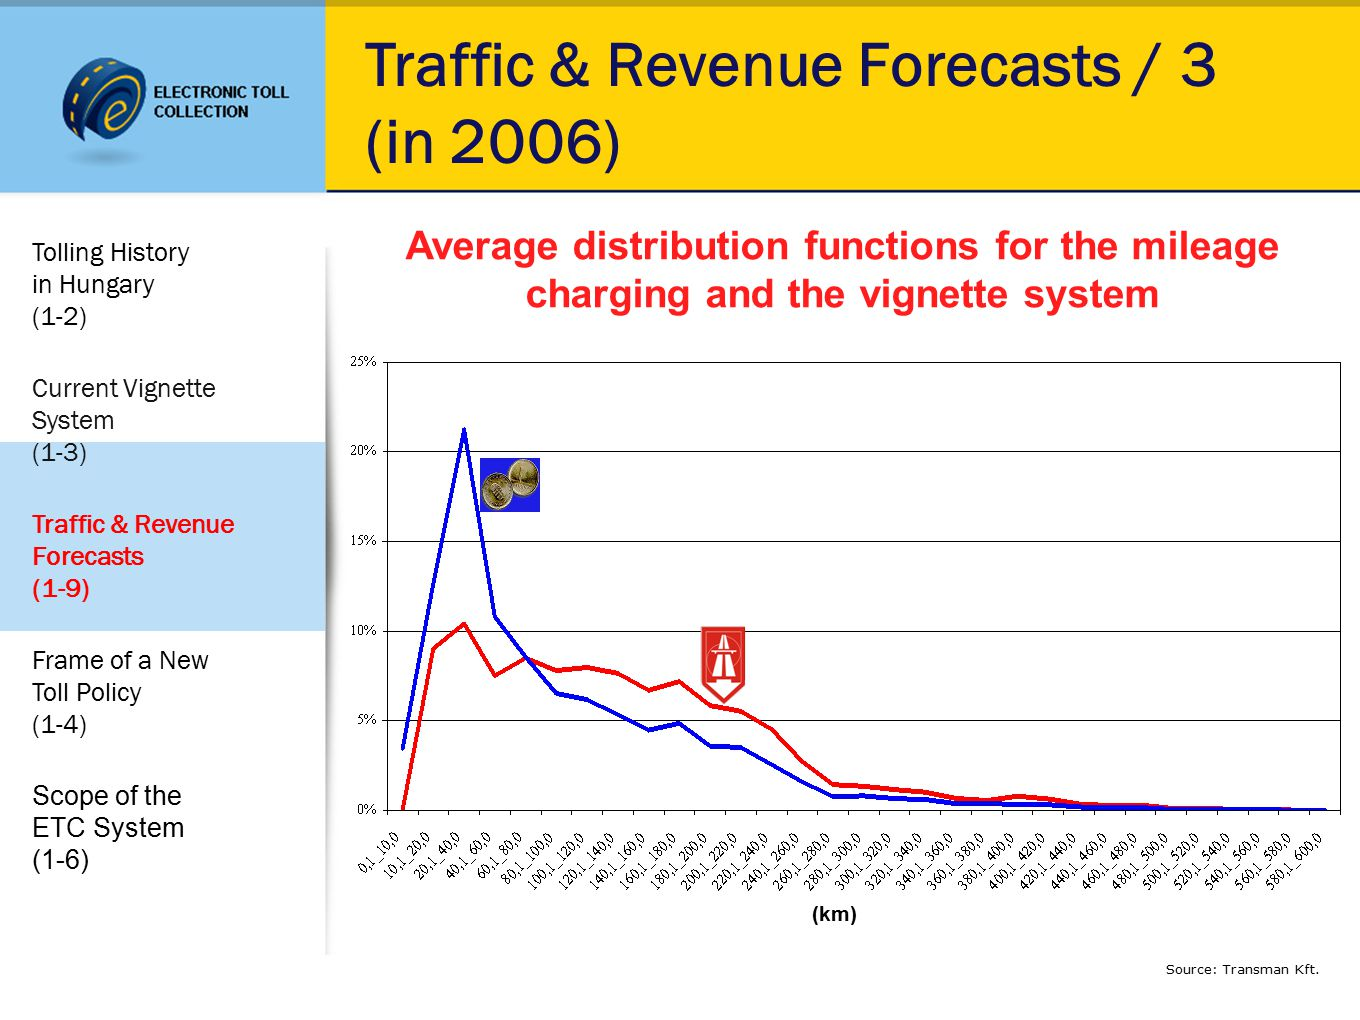 Traffic & Revenue Forecasts / 3 (in 2006) Source: Transman Kft.